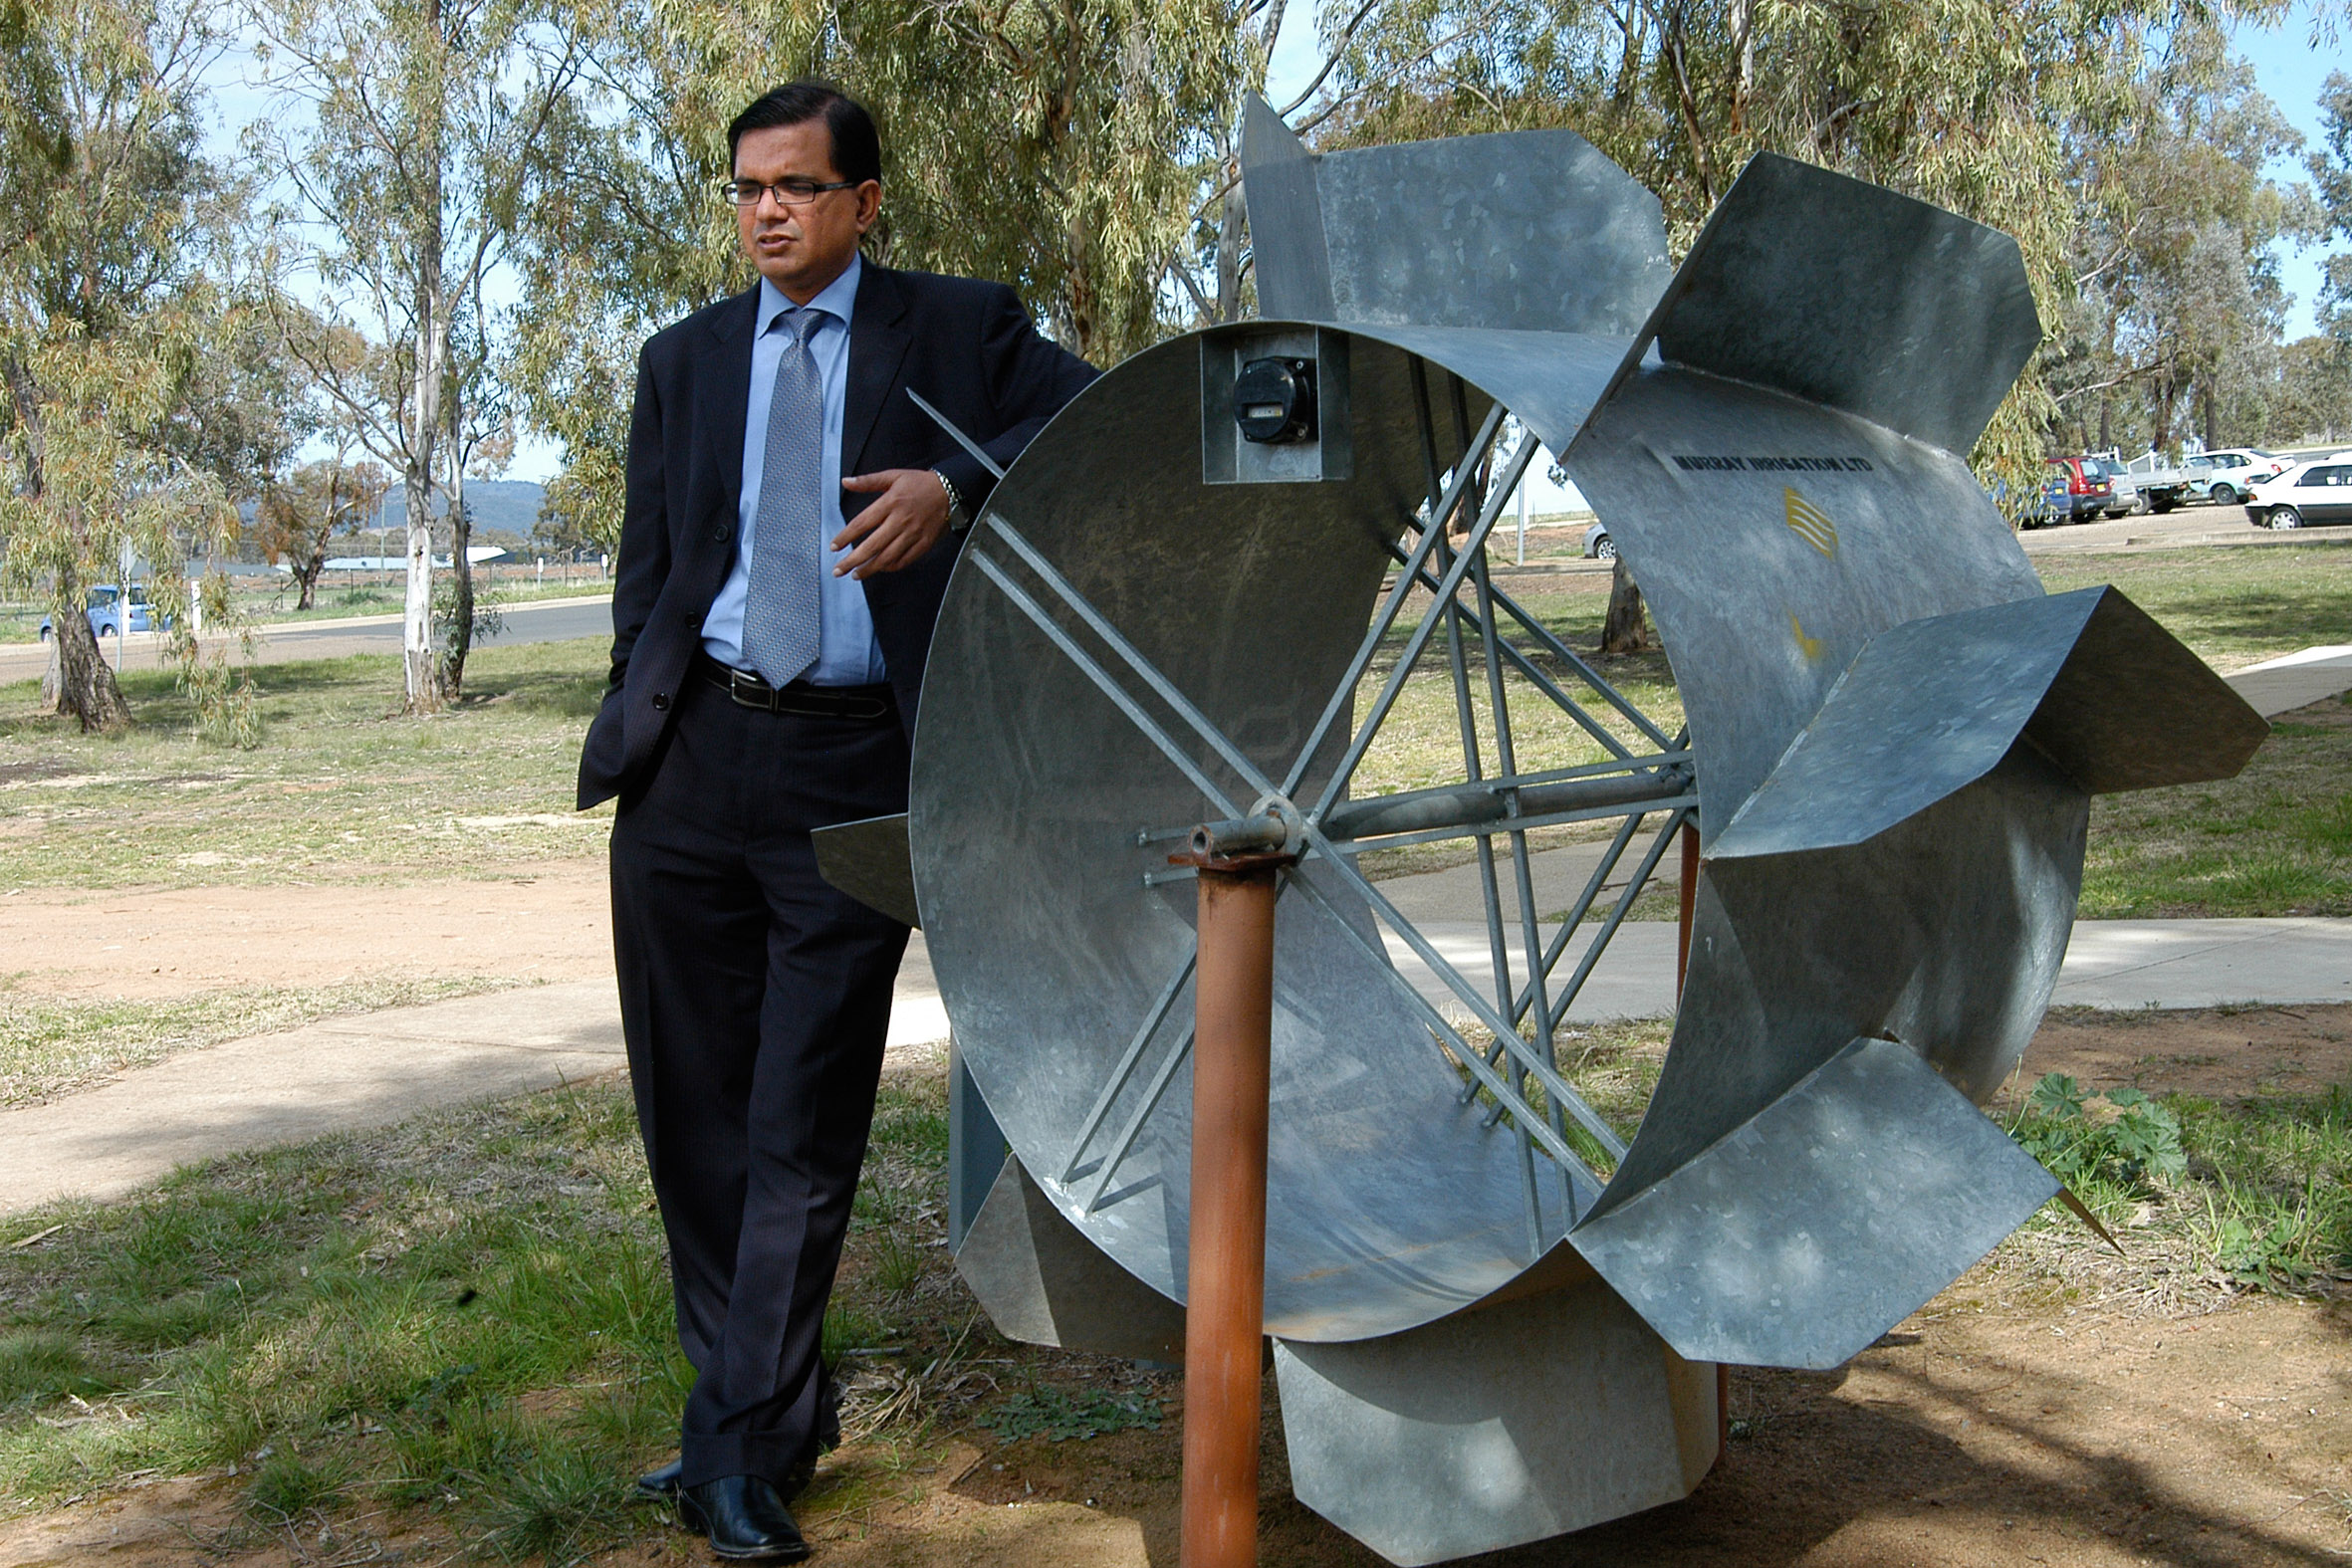 Director of IC Water, Associate Professor Mohsin Hafeez looks forward to the opening of a new home for IC Water.